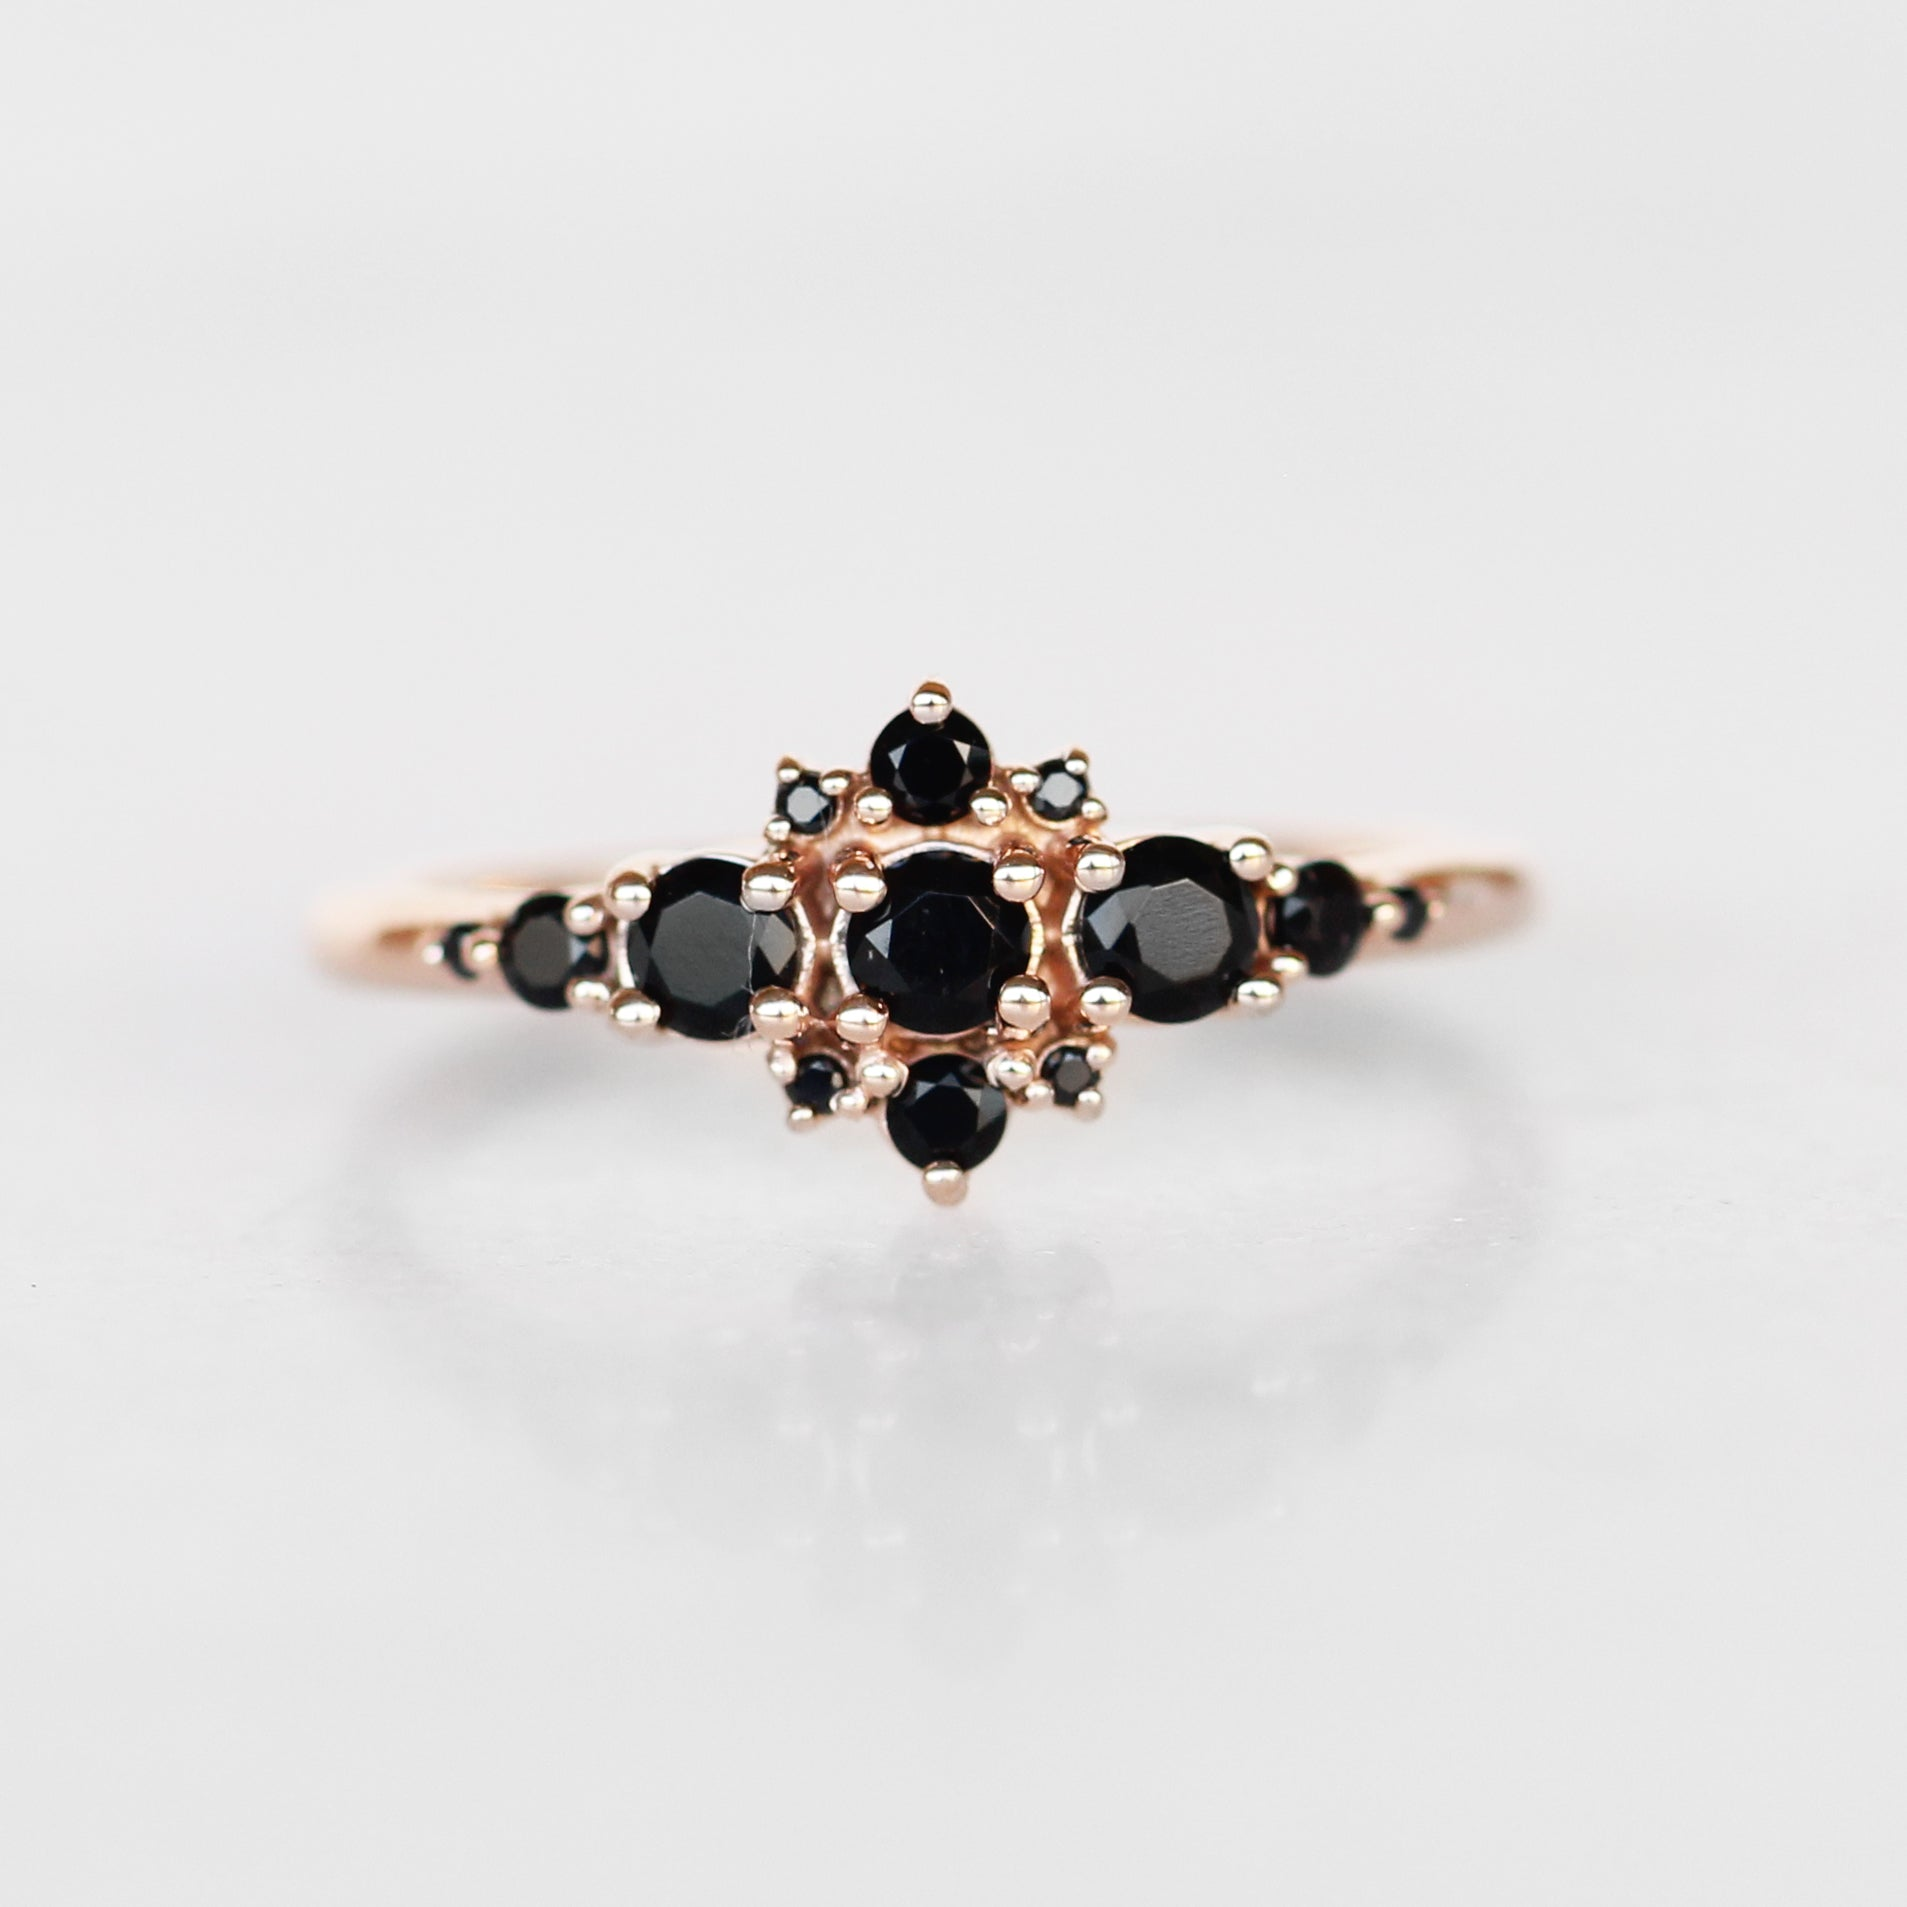 Victoria Ring with Diamonds and Black Onyx in Your Choice of 14k gold - Salt & Pepper Celestial Diamond Engagement Rings and Wedding Bands  by Midwinter Co.